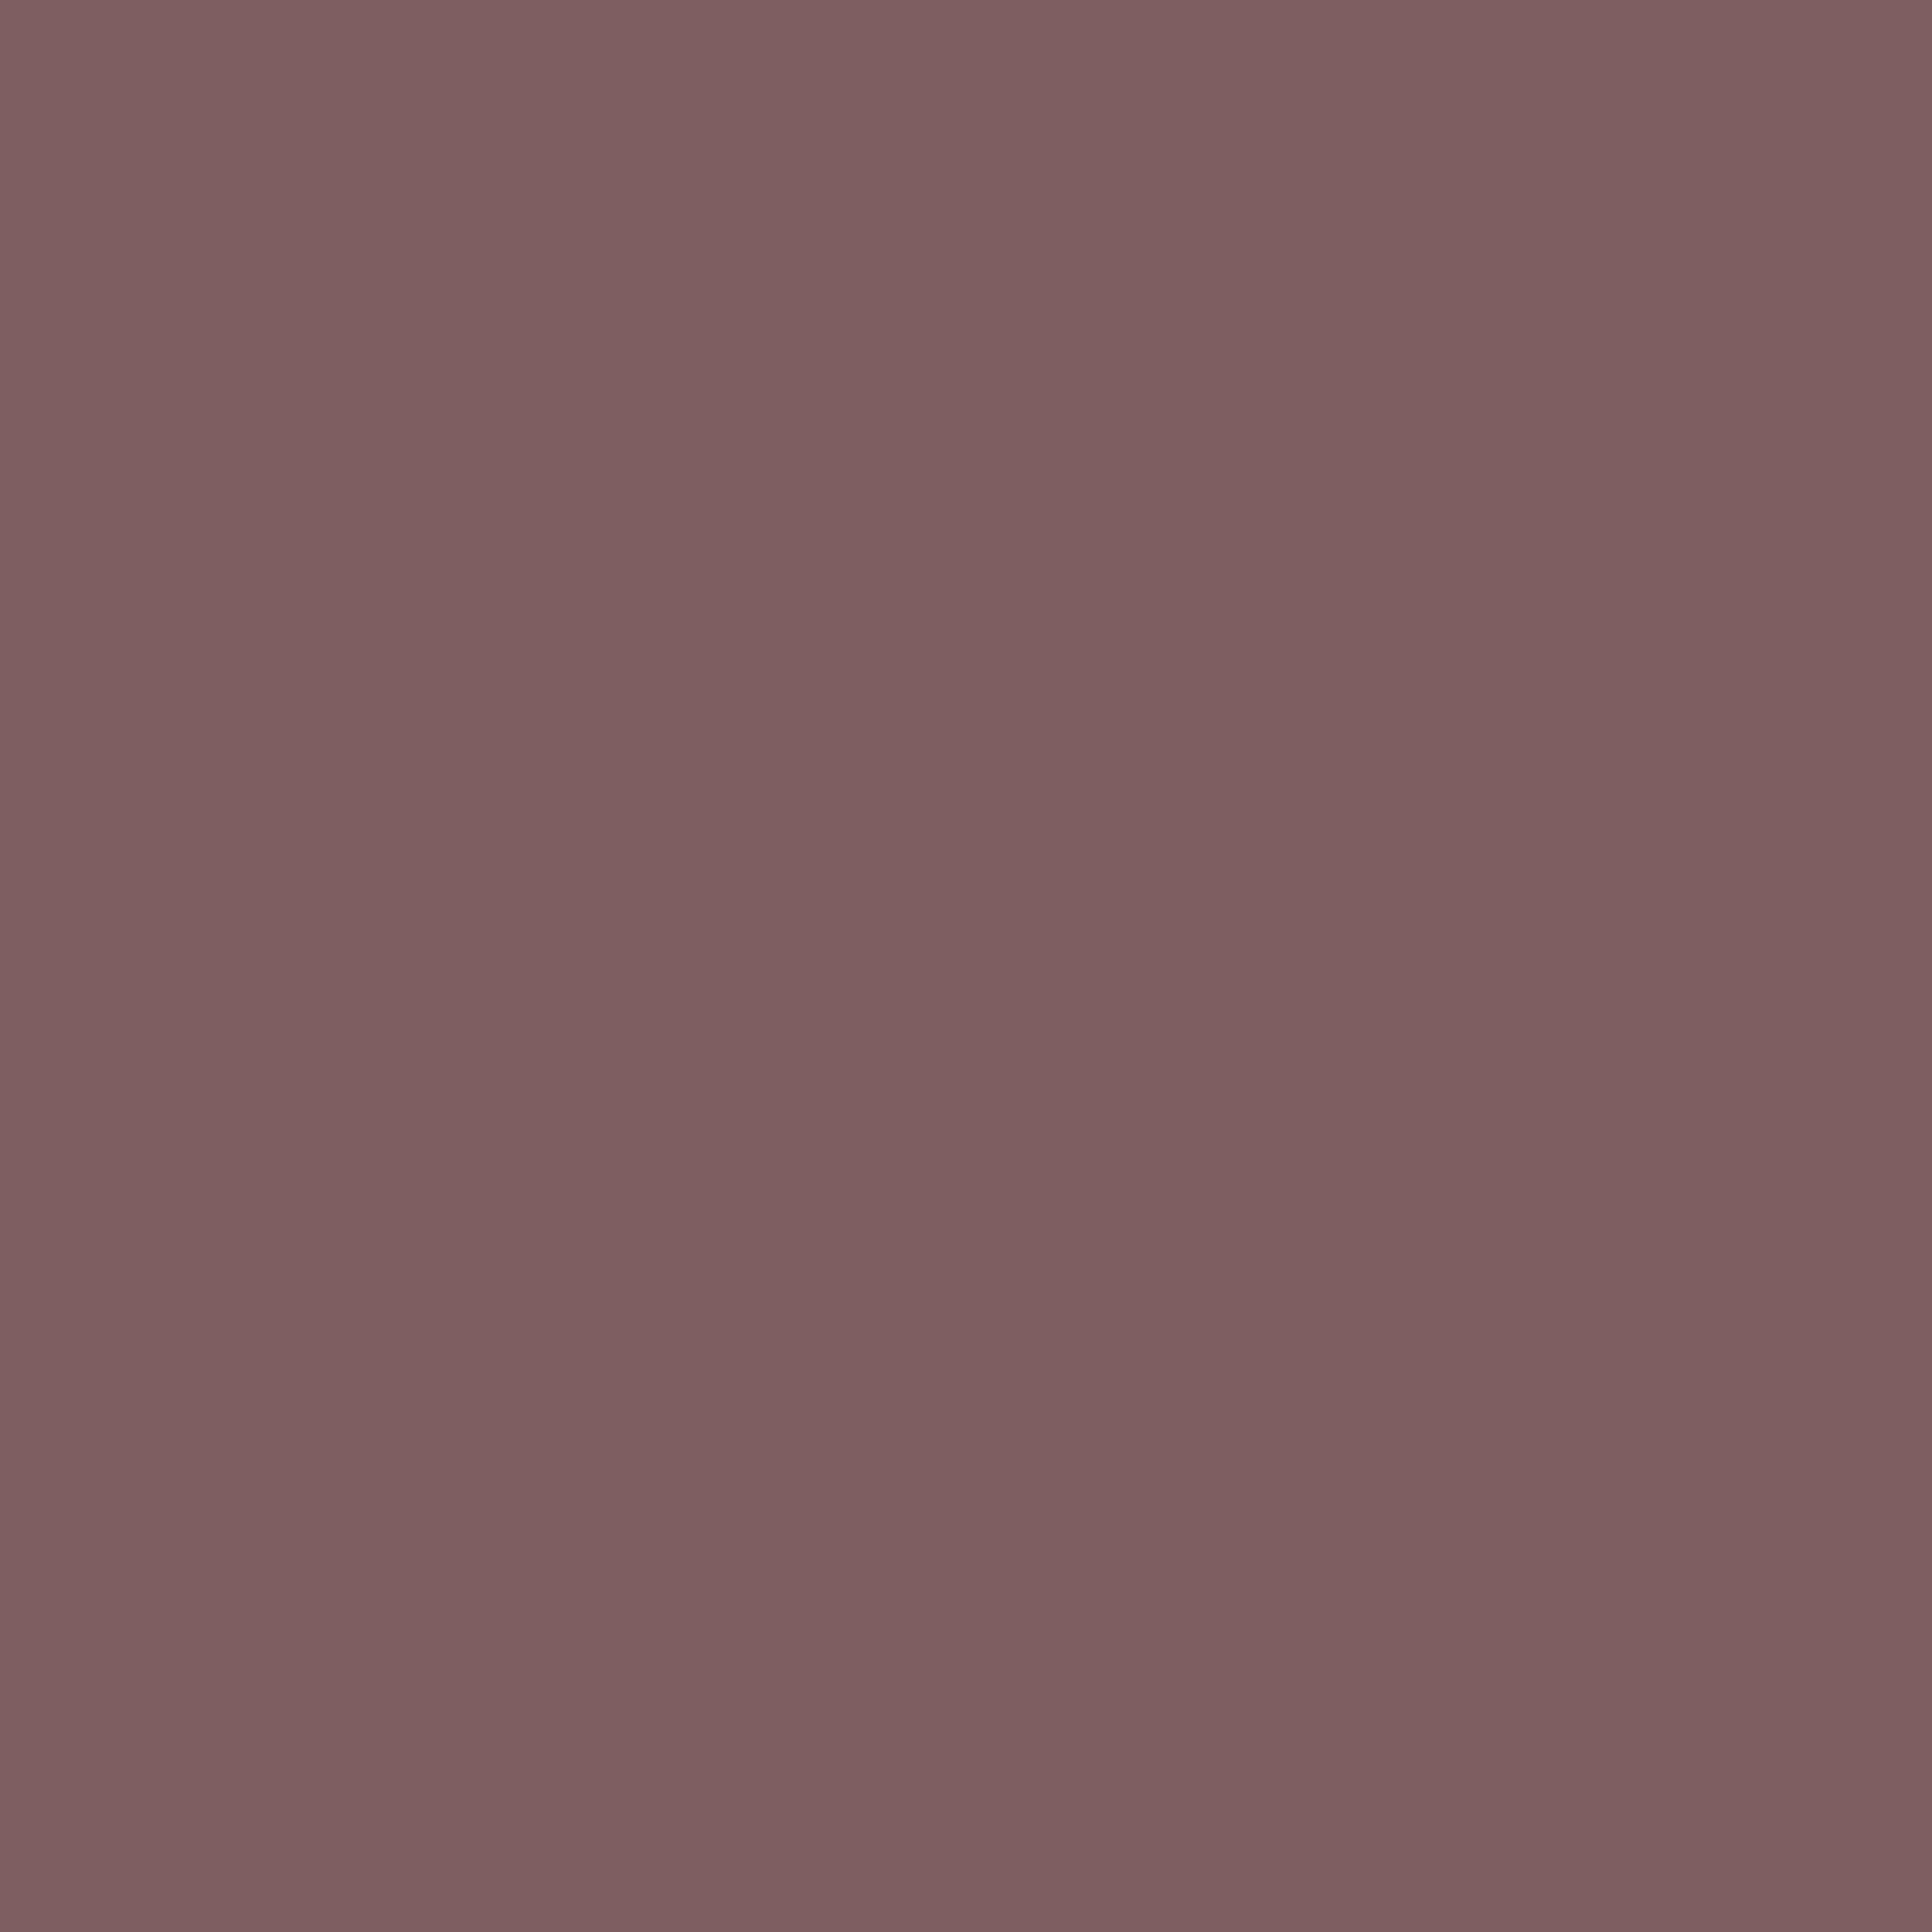 2048x2048 Deep Taupe Solid Color Background